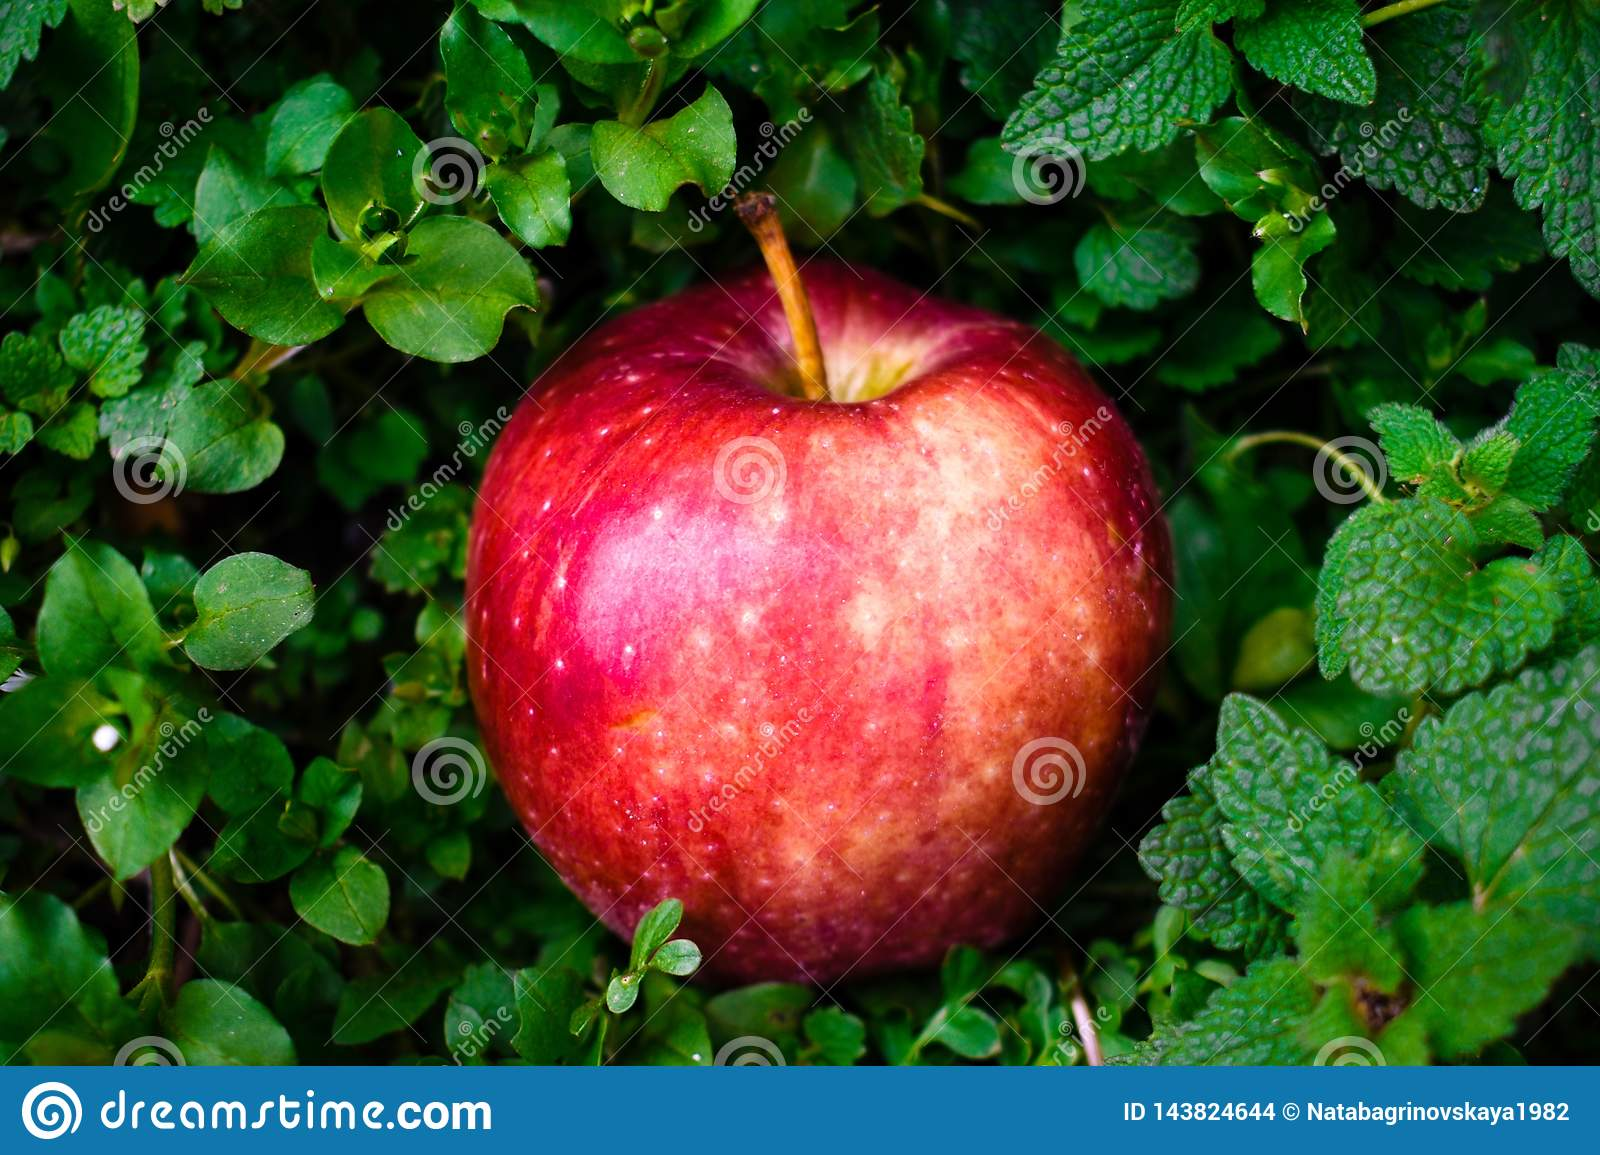 Red apple on green background isolated